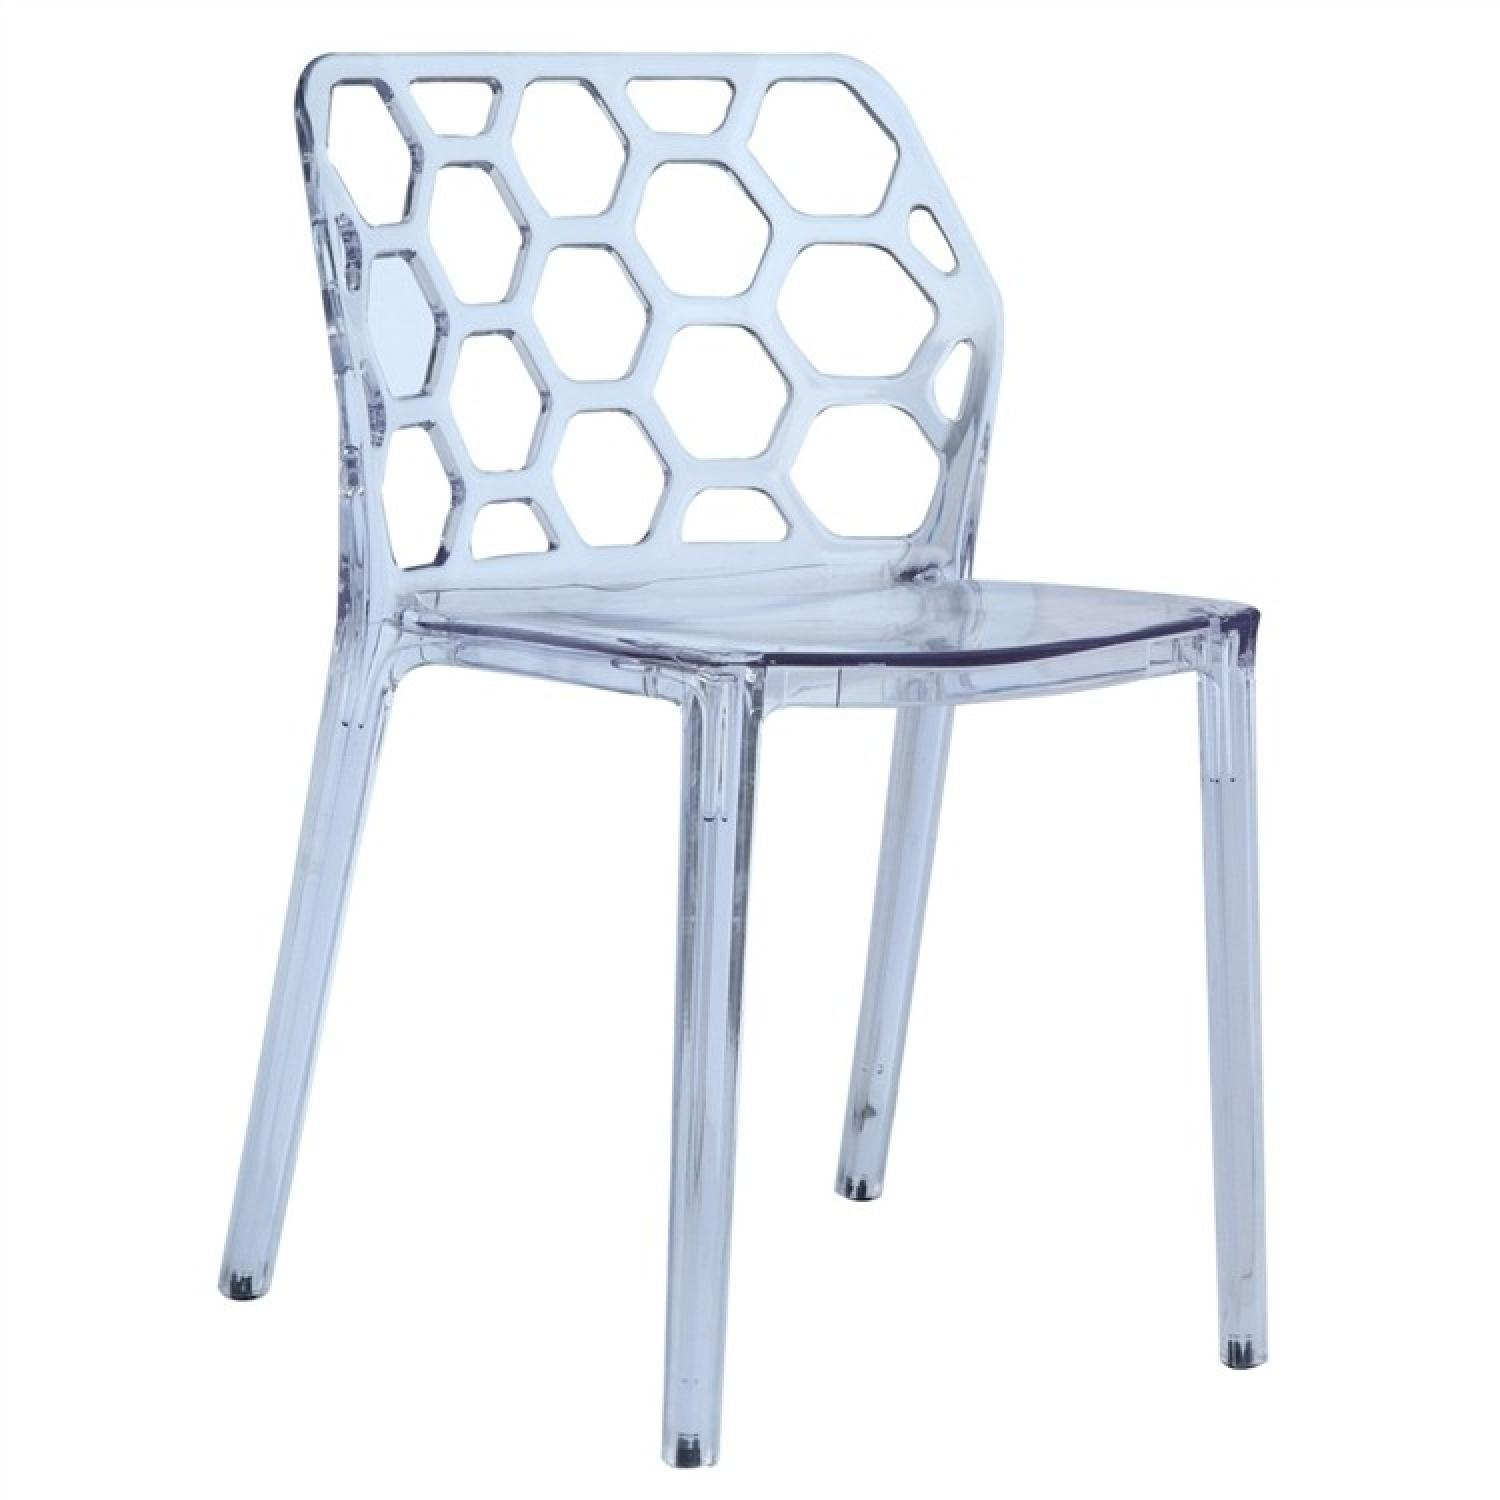 Modern Indoor/Outdoor Scratch-Resistant Dining Chair w/ Hone